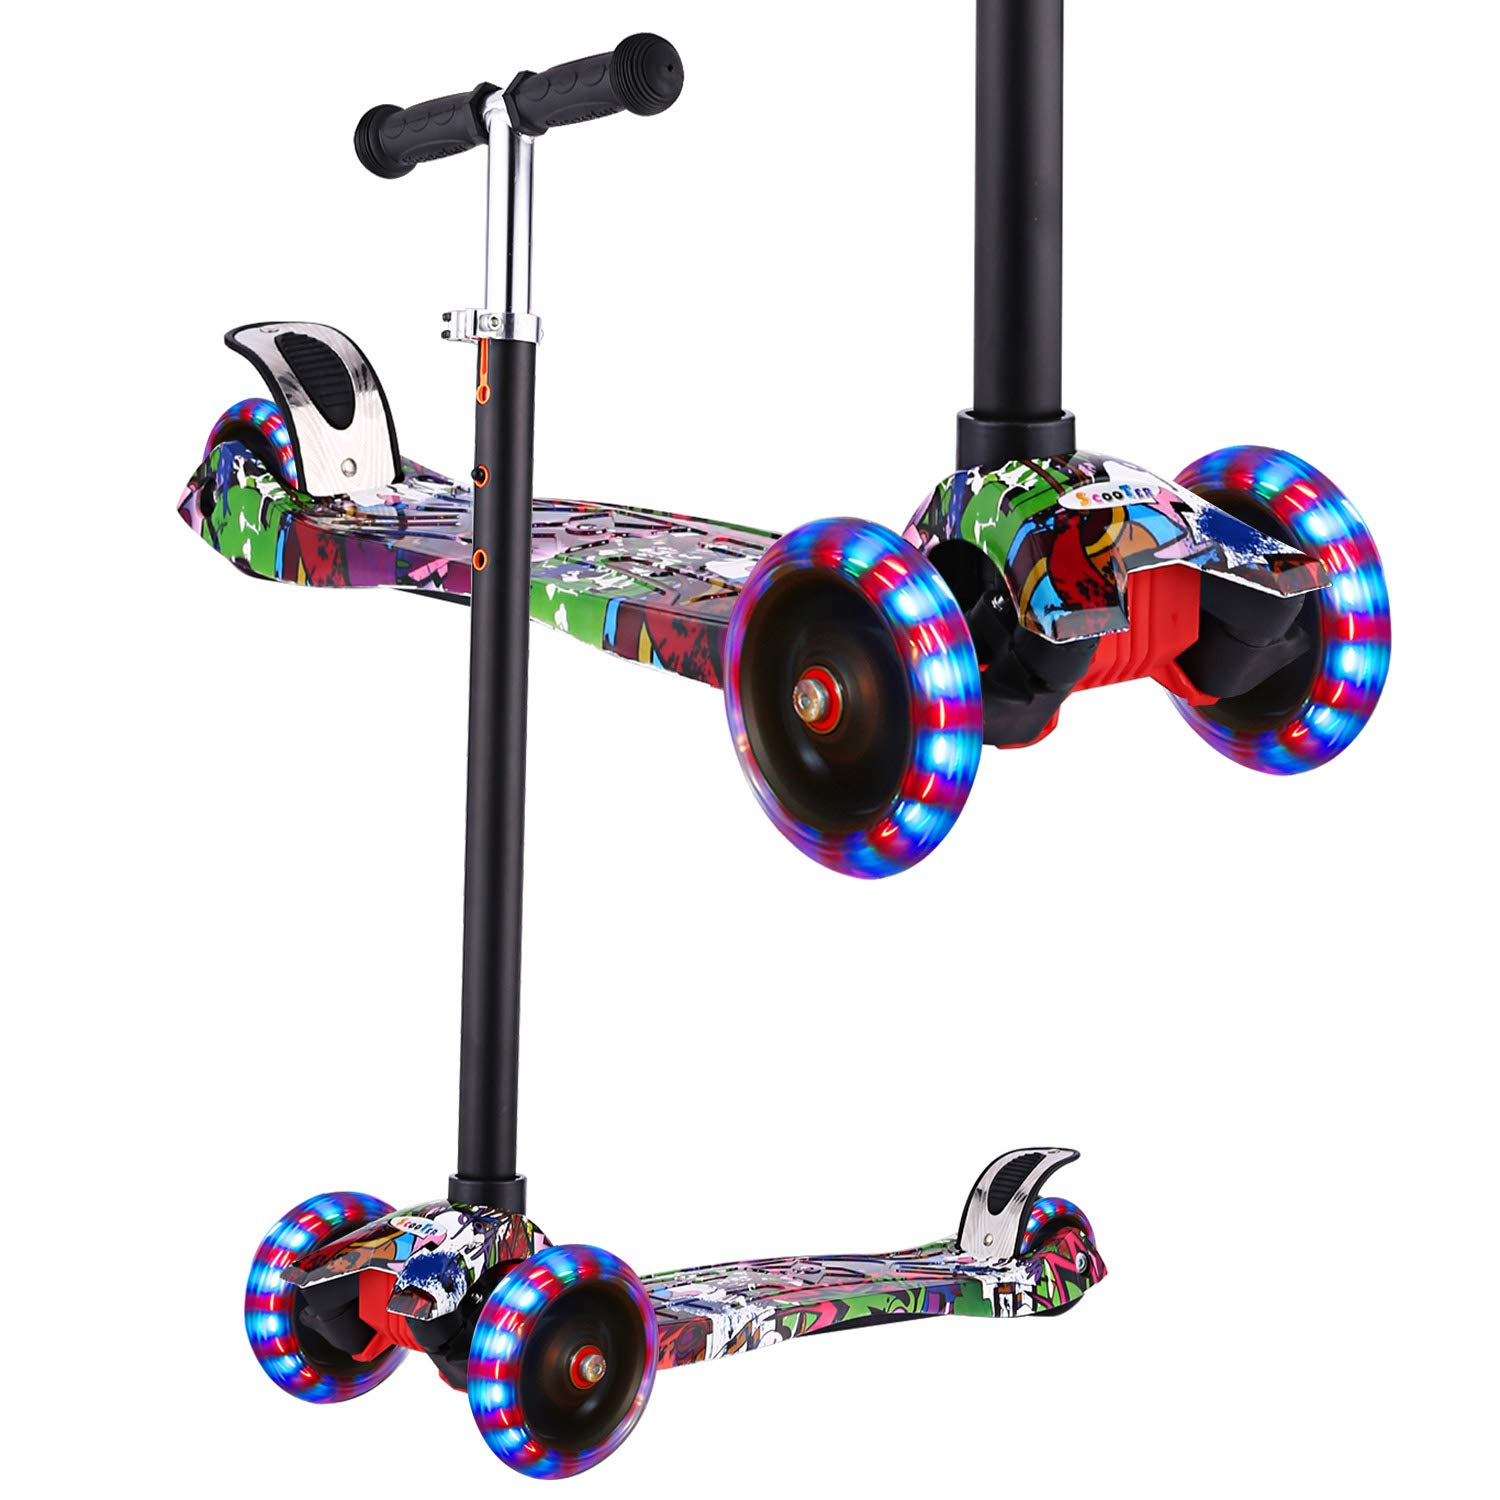 Hikole Kick Scooter for Kids, 3 Wheel Scooter for Toddlers Girls & Boys, 3 Adjustable Height, Lean to Steer with PU LED Light Up Wheels for Children from 3 to 12 Years Old by Hikole